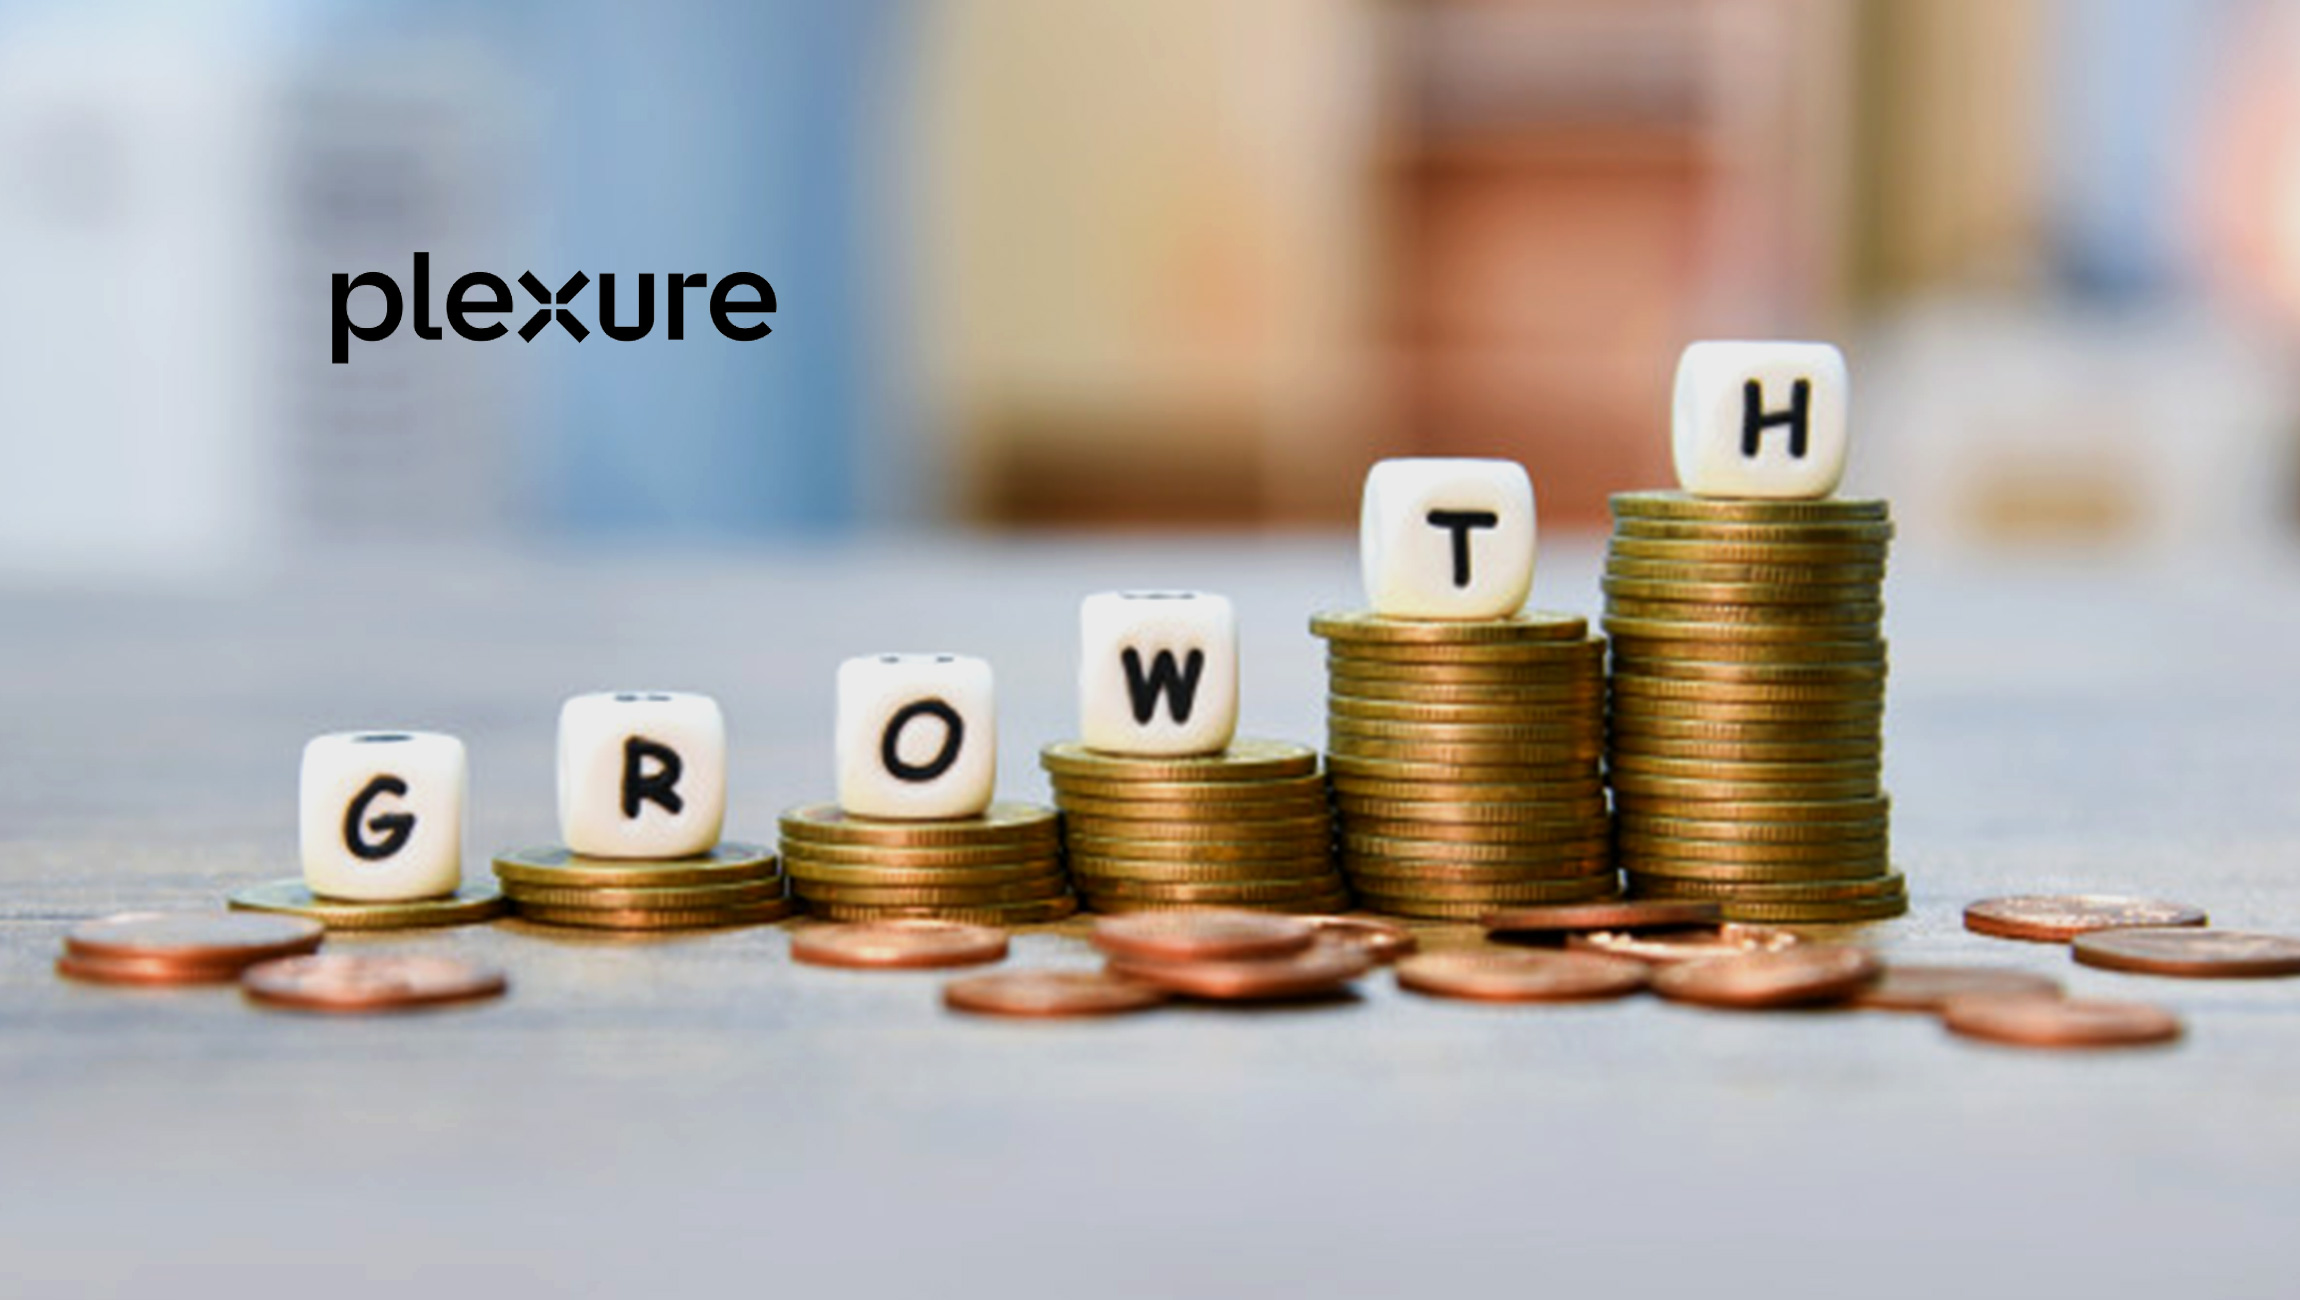 Plexure's Growth Recognized with Global Index Inclusion